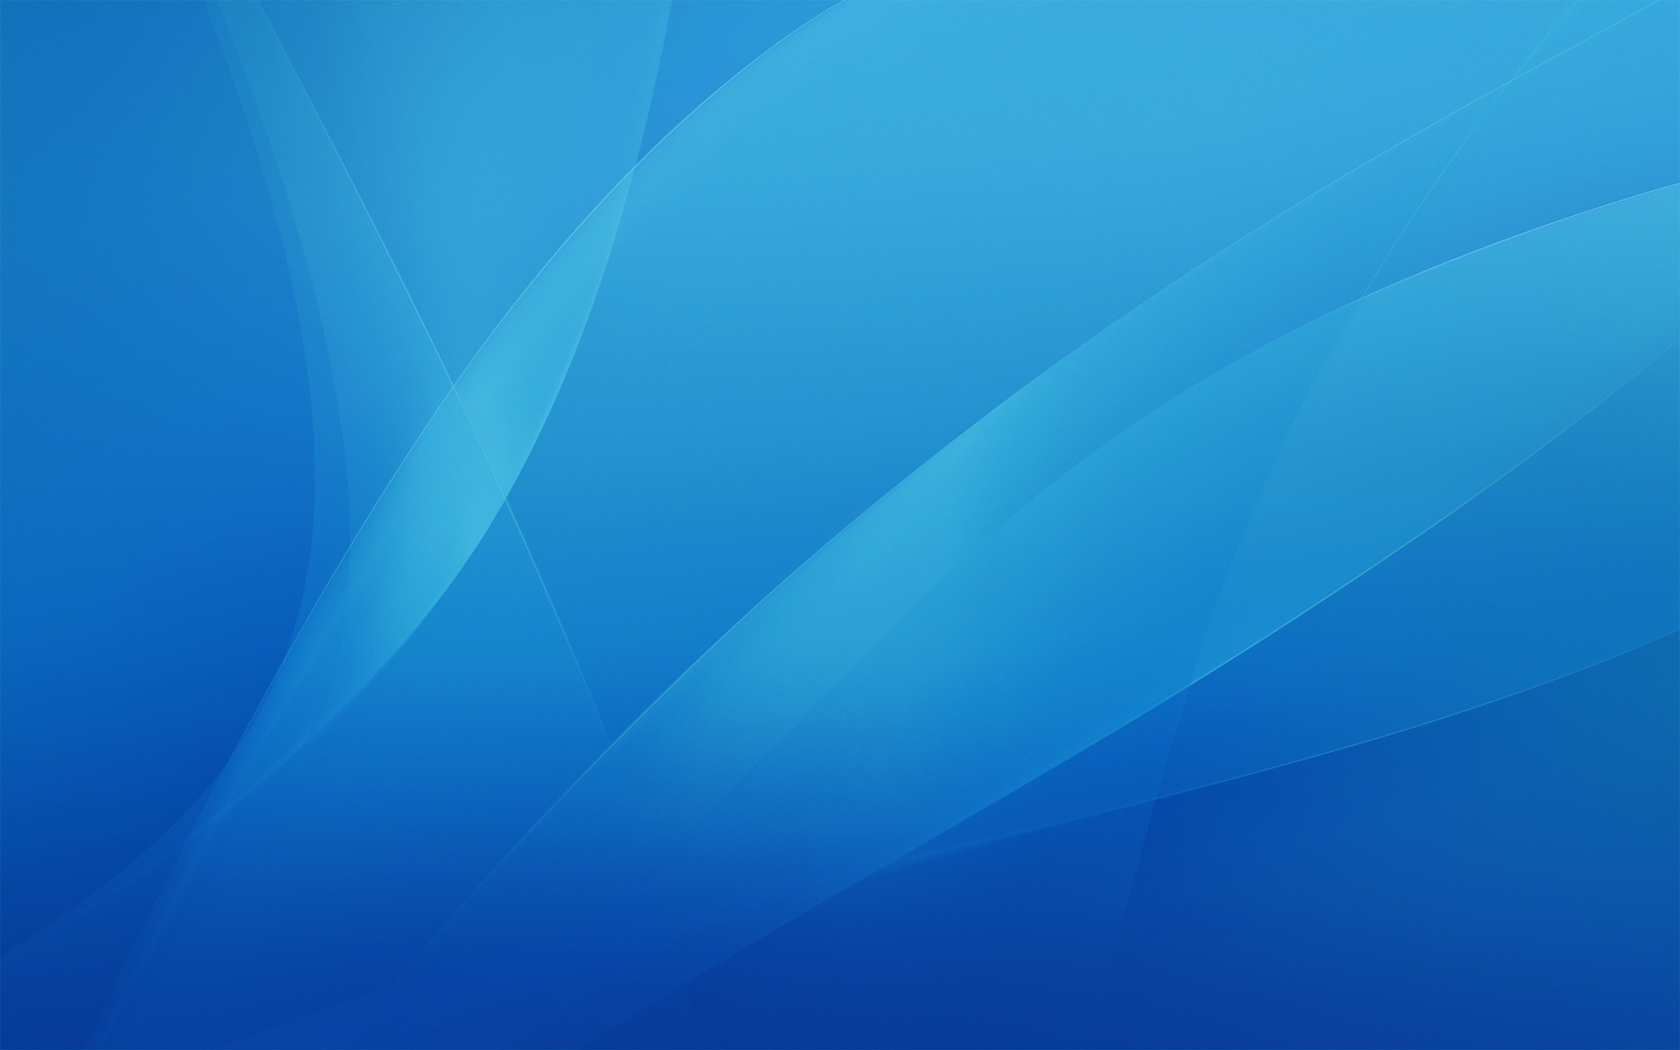 Blue-Abstract-Background-Hd-in-Abstract-Imagesci-wallpaper-wp3603502